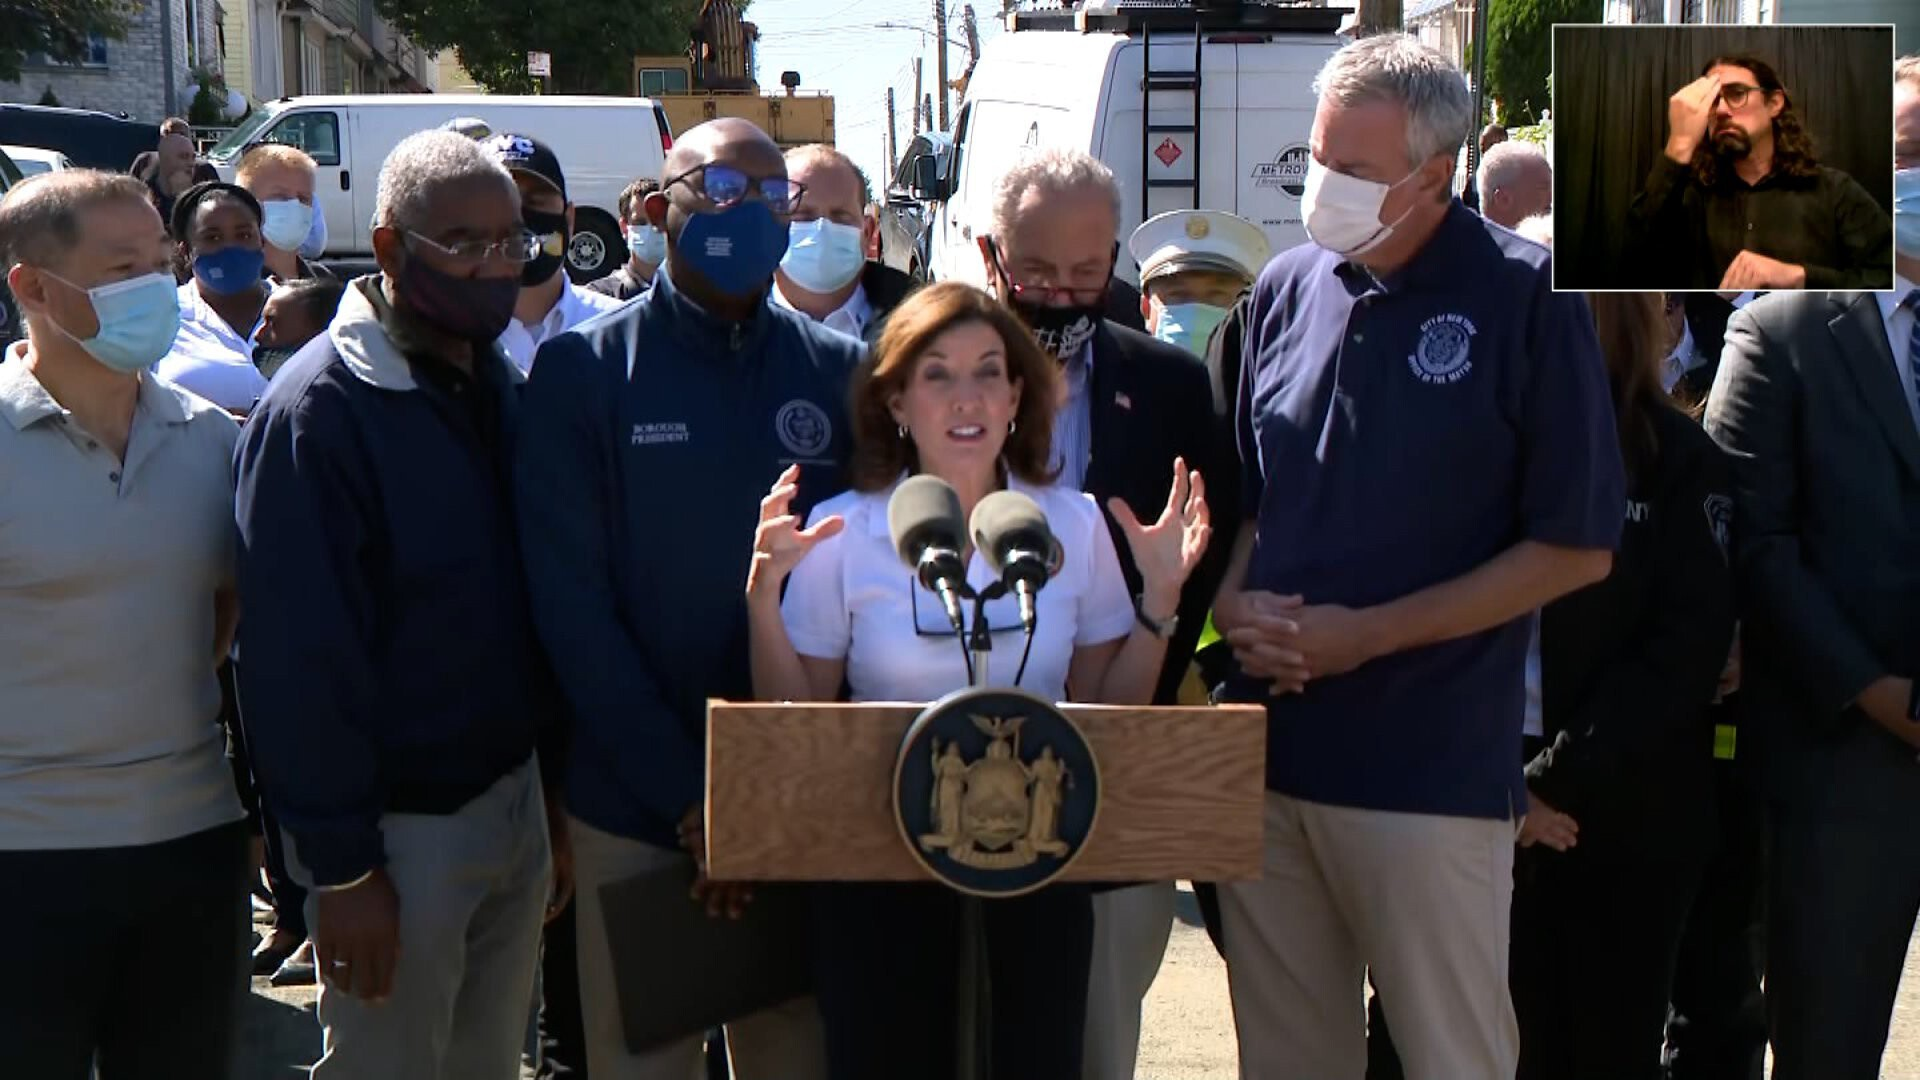 New York Gov. Hochul faces first crisis after Ida floods parts of the state